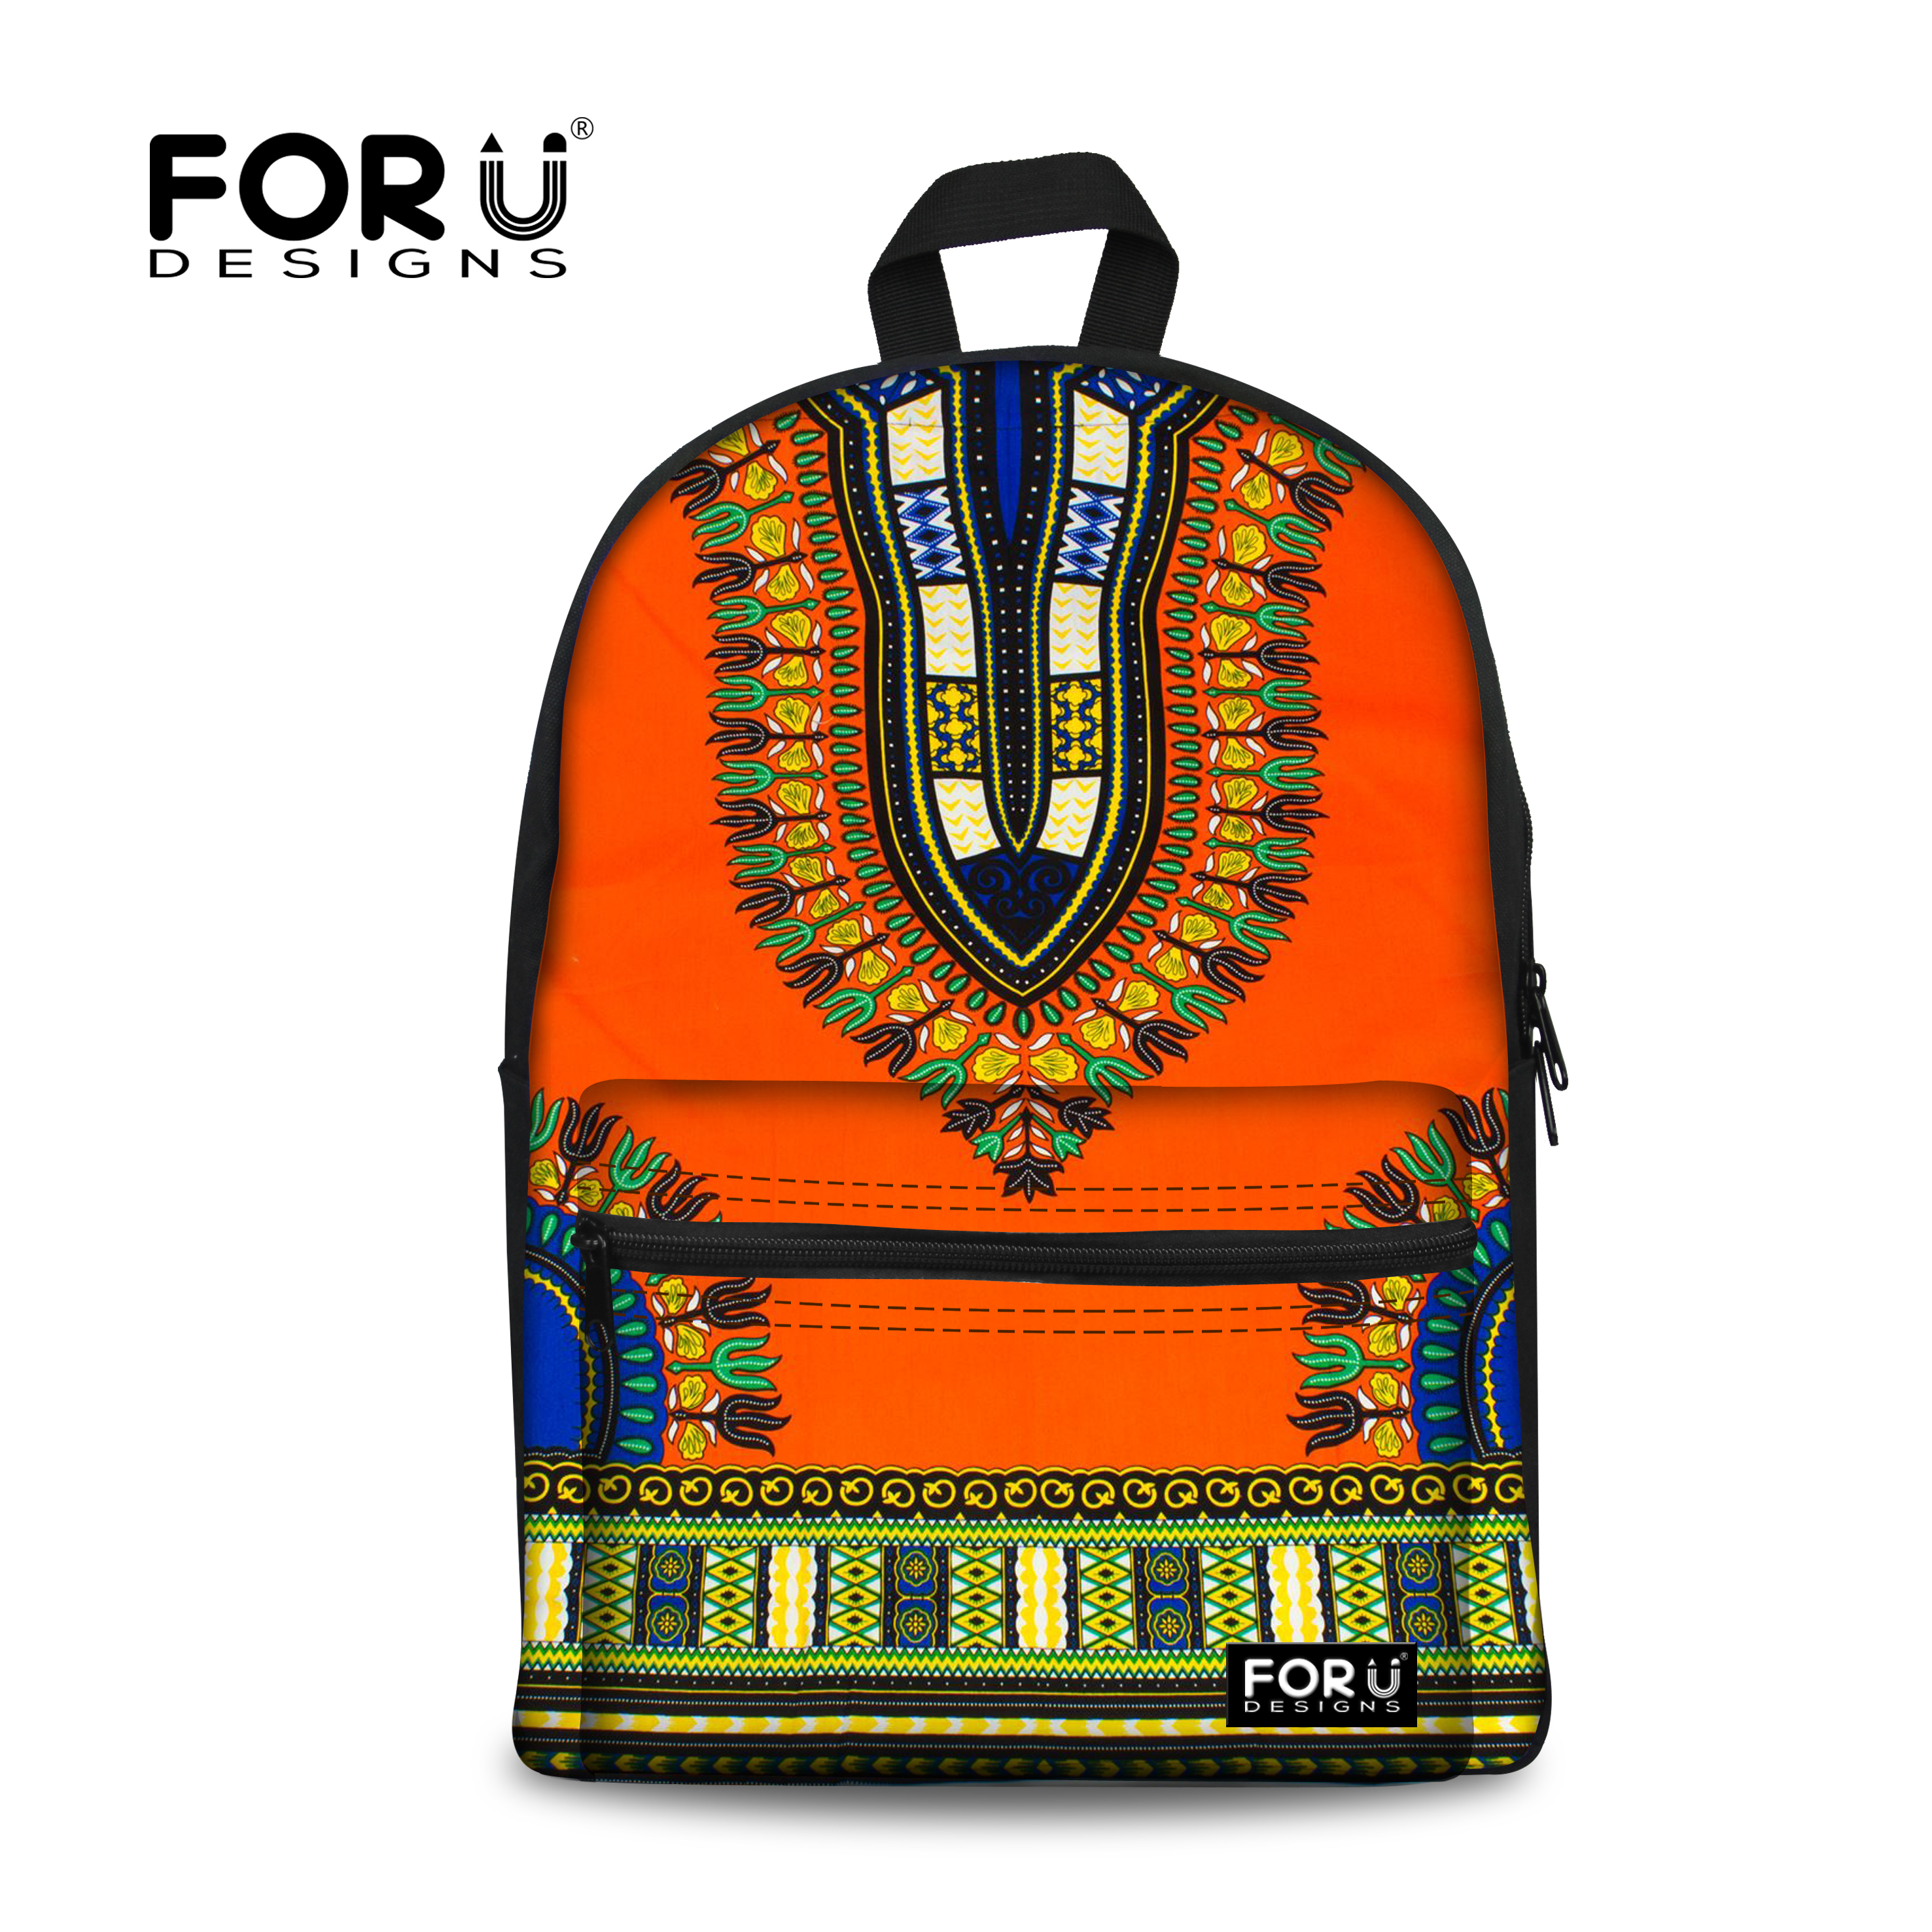 FORUDESIGNS Tribal Ethnic School Bag Backpack For Children Girls African Traditional Printed Vintage Teenager Kid Book Schoolbag round beach throw with tribal chevron totem printed